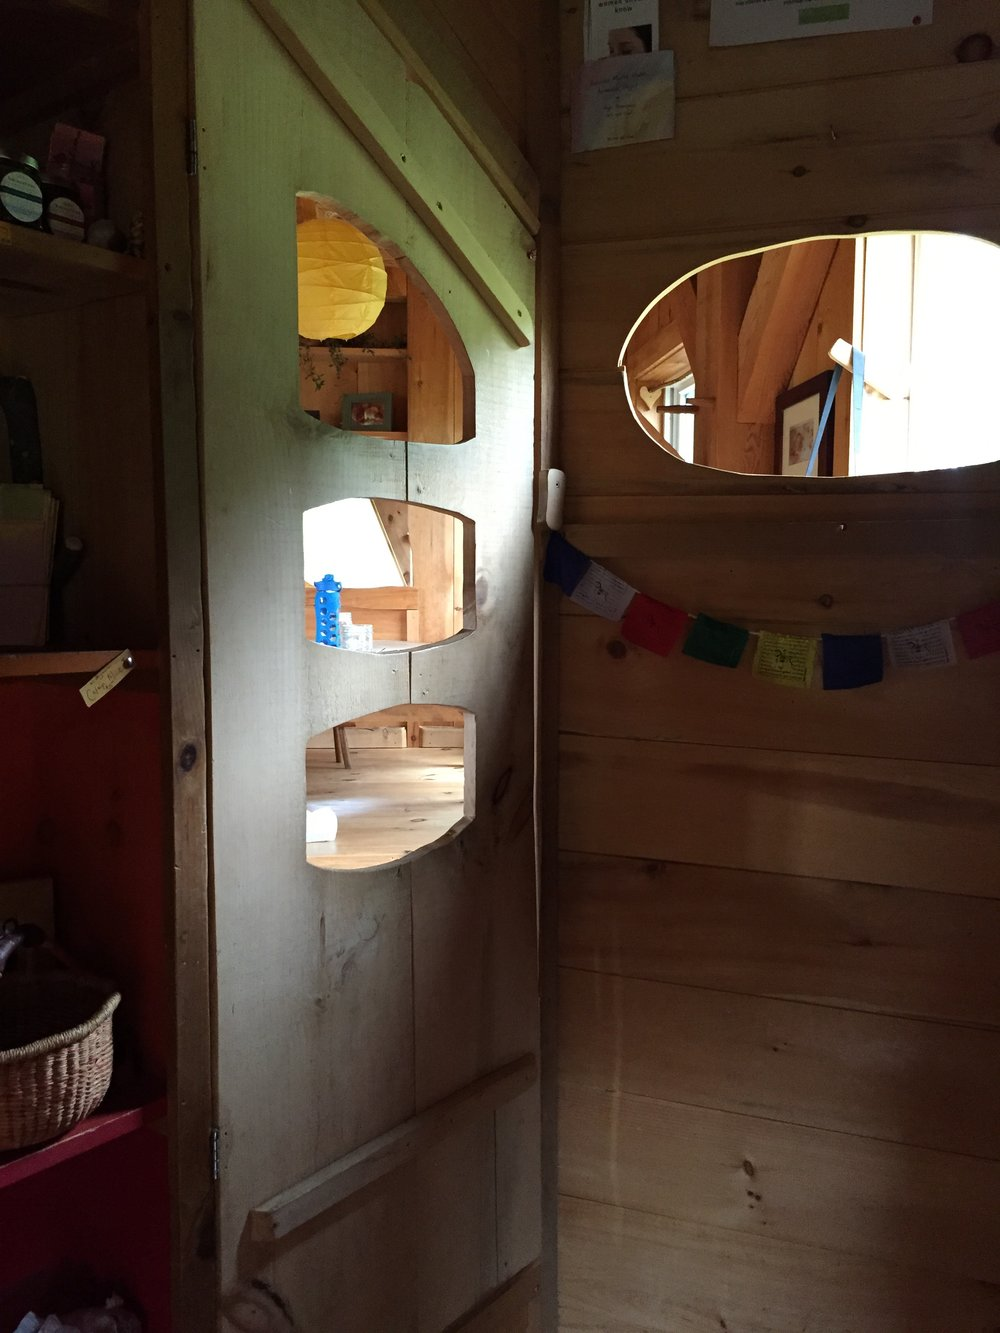 The foyer to the main house at Many Hands Farm is the place for shoes and where the family lists prices for eggs and goat's milk and other items they offer for sale or barter.